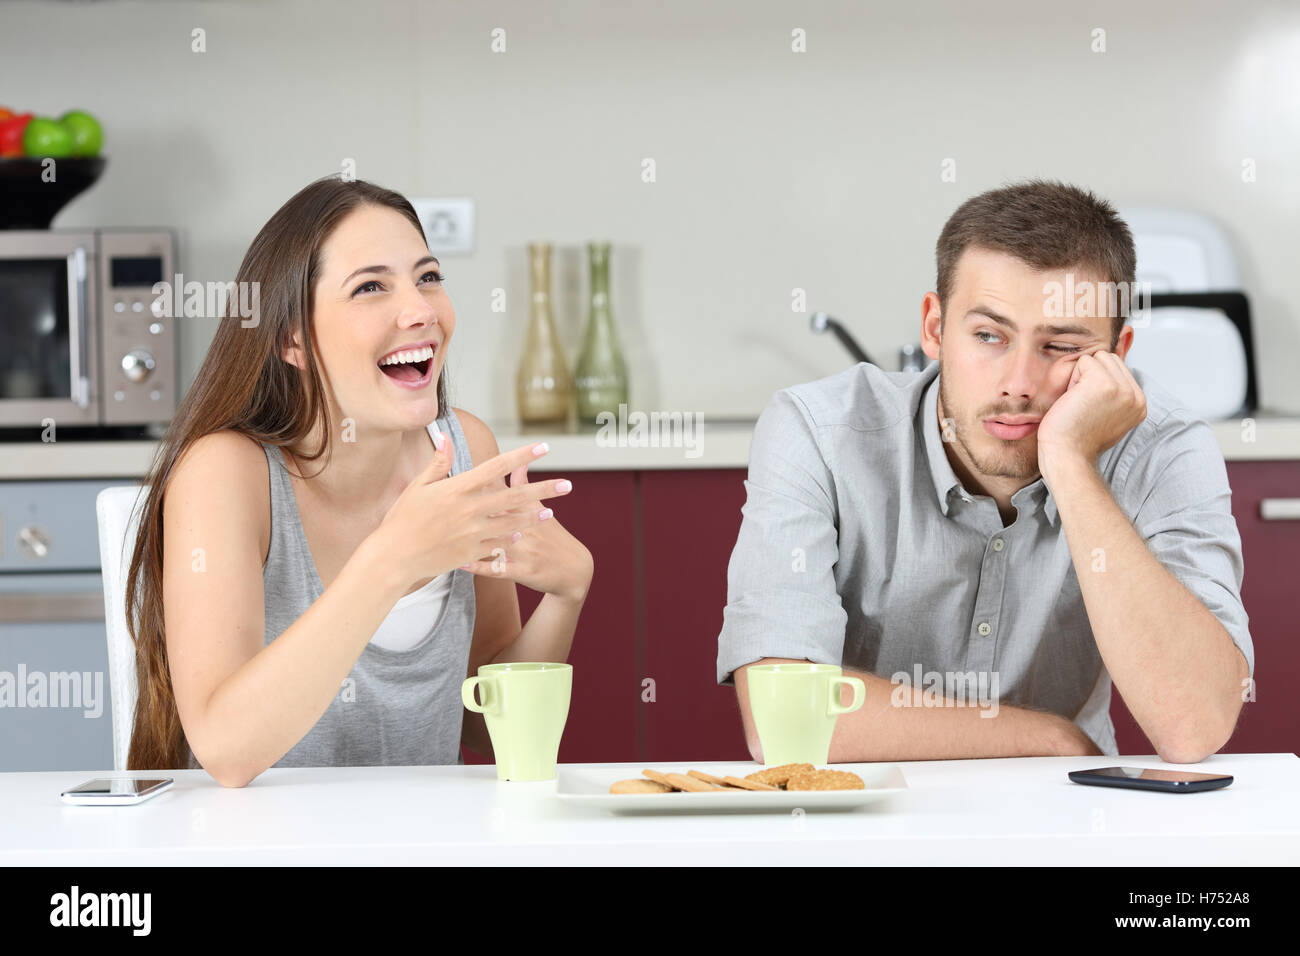 Bored husband hearing his wife talking during breakfast in the kitchen at home - Stock Image